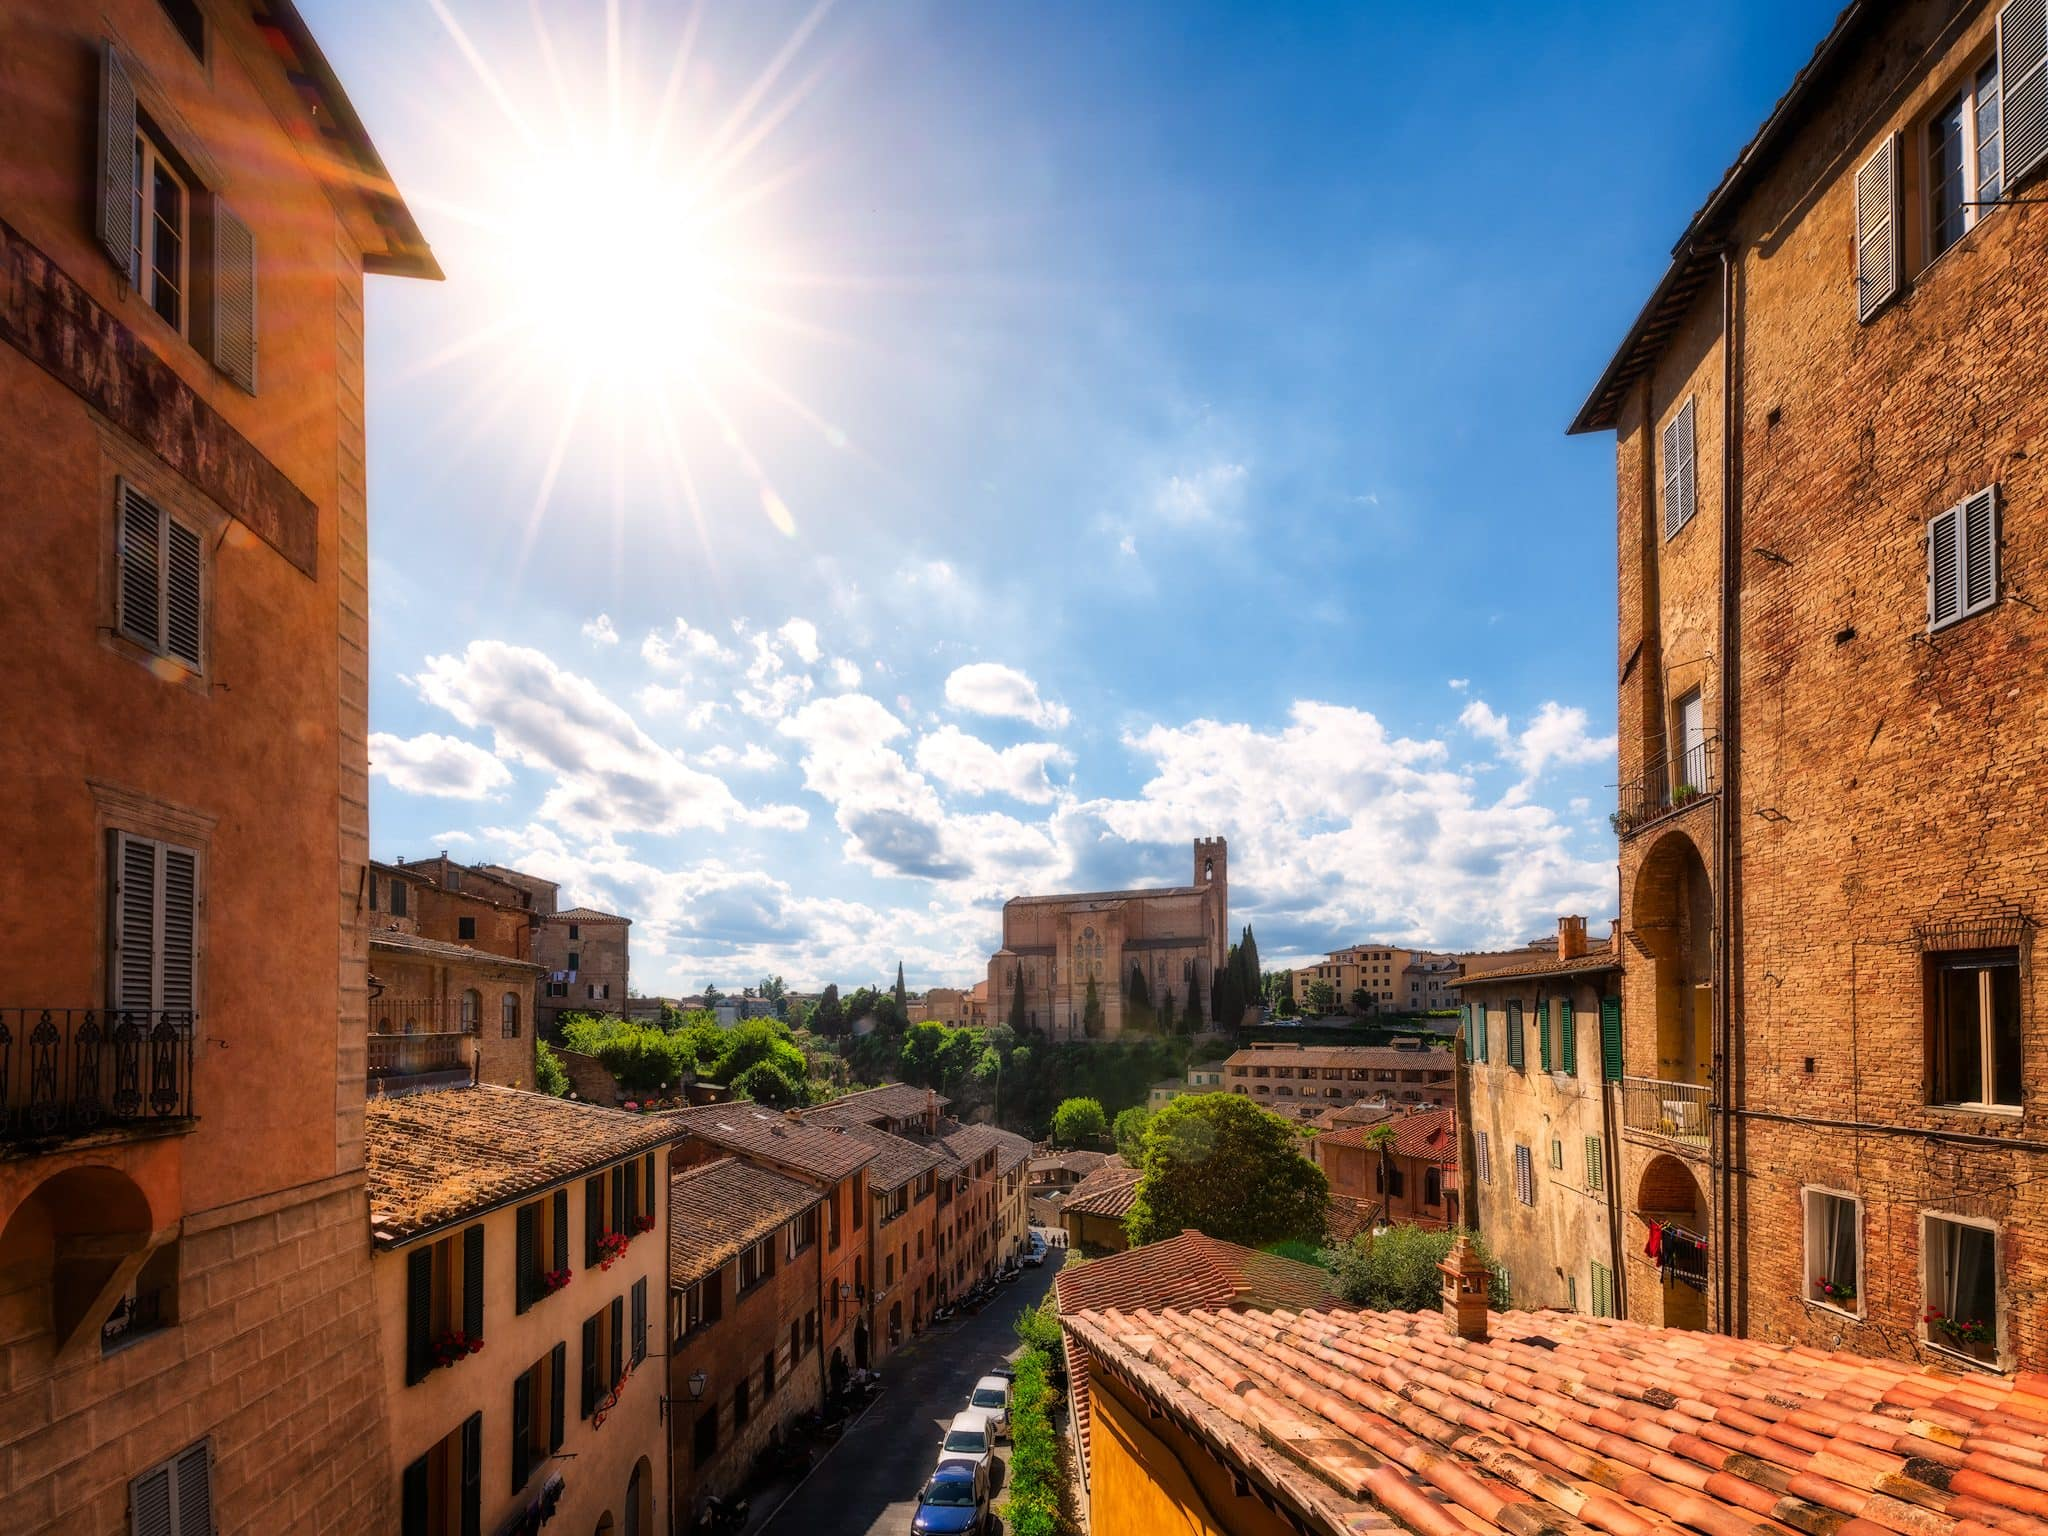 Basilica di San Domenico in Sienna, Italy – a summer's day.